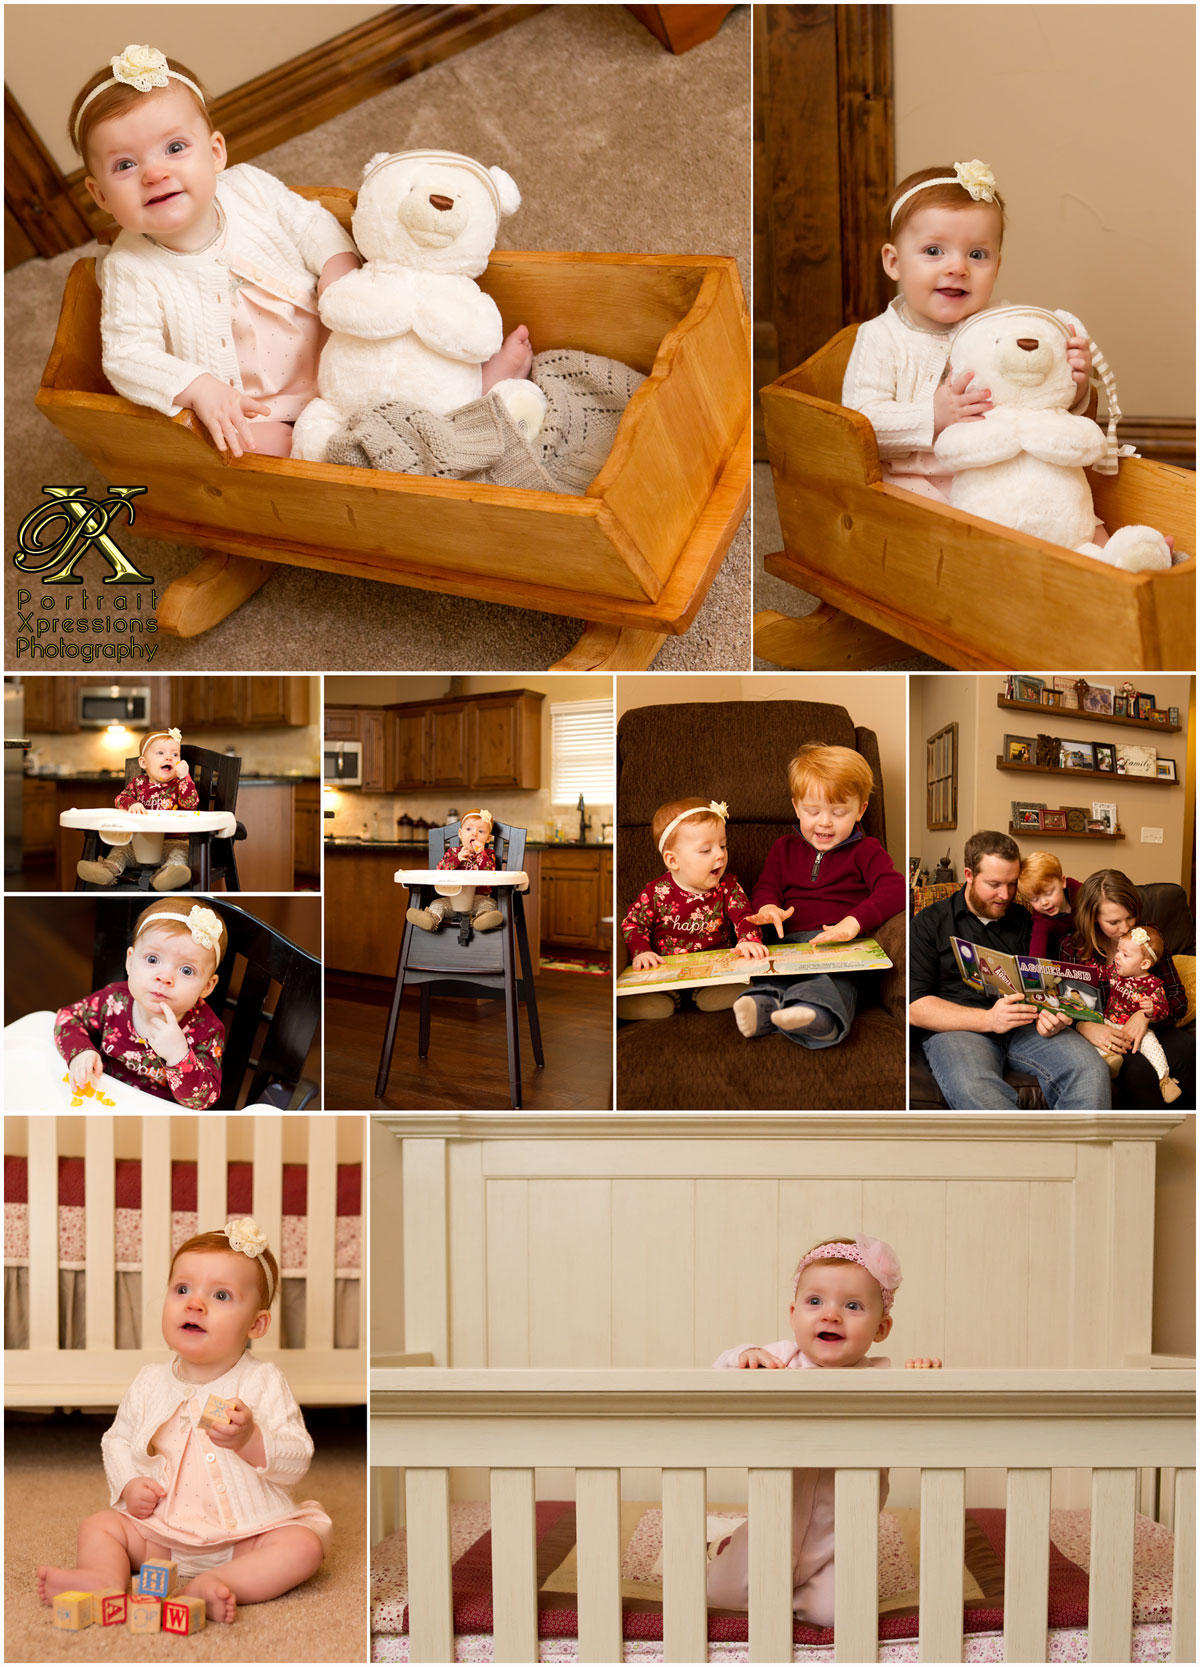 baby Joley's day in a life photography session